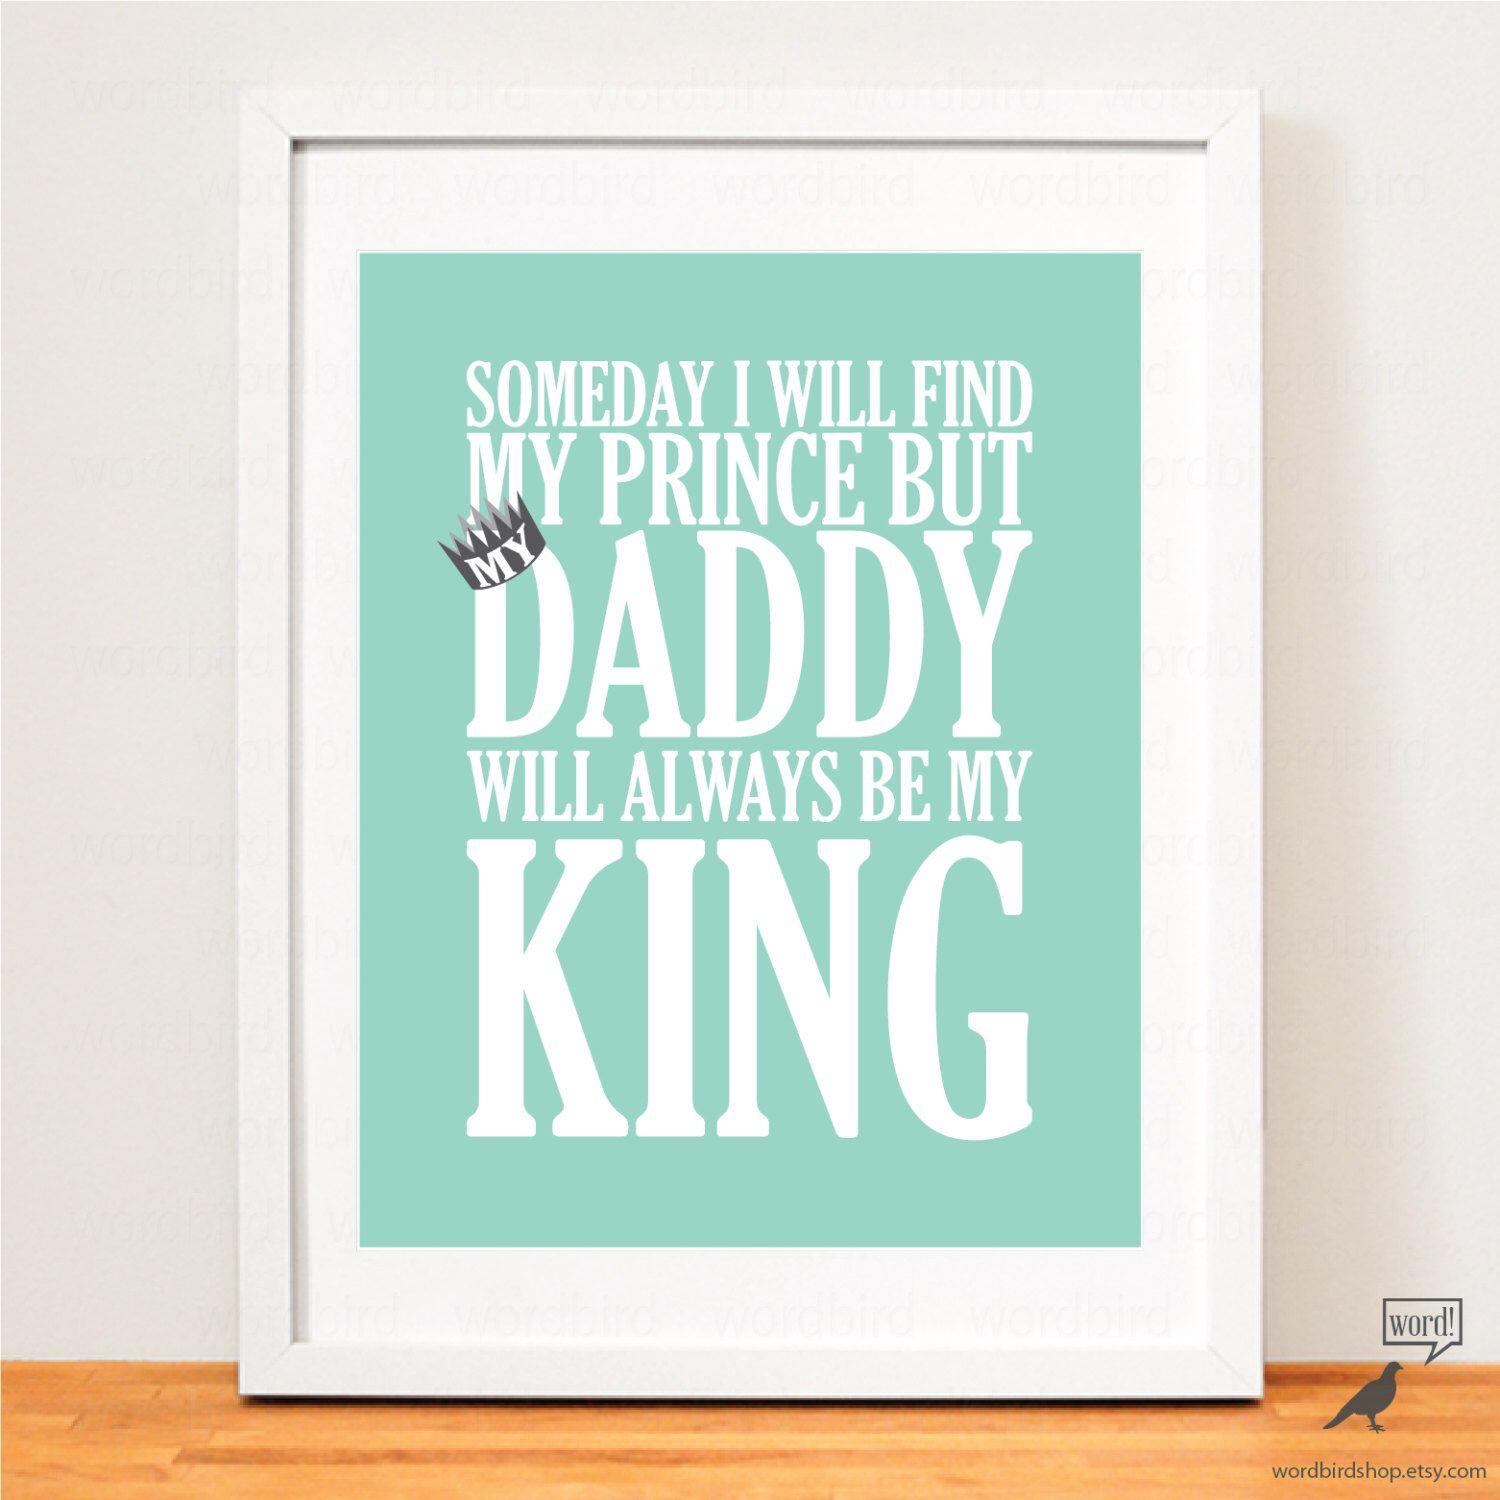 Christmas Ideas For Dad From Daughter.Pin By Christine Hernandez On Father S Day Fathers Day